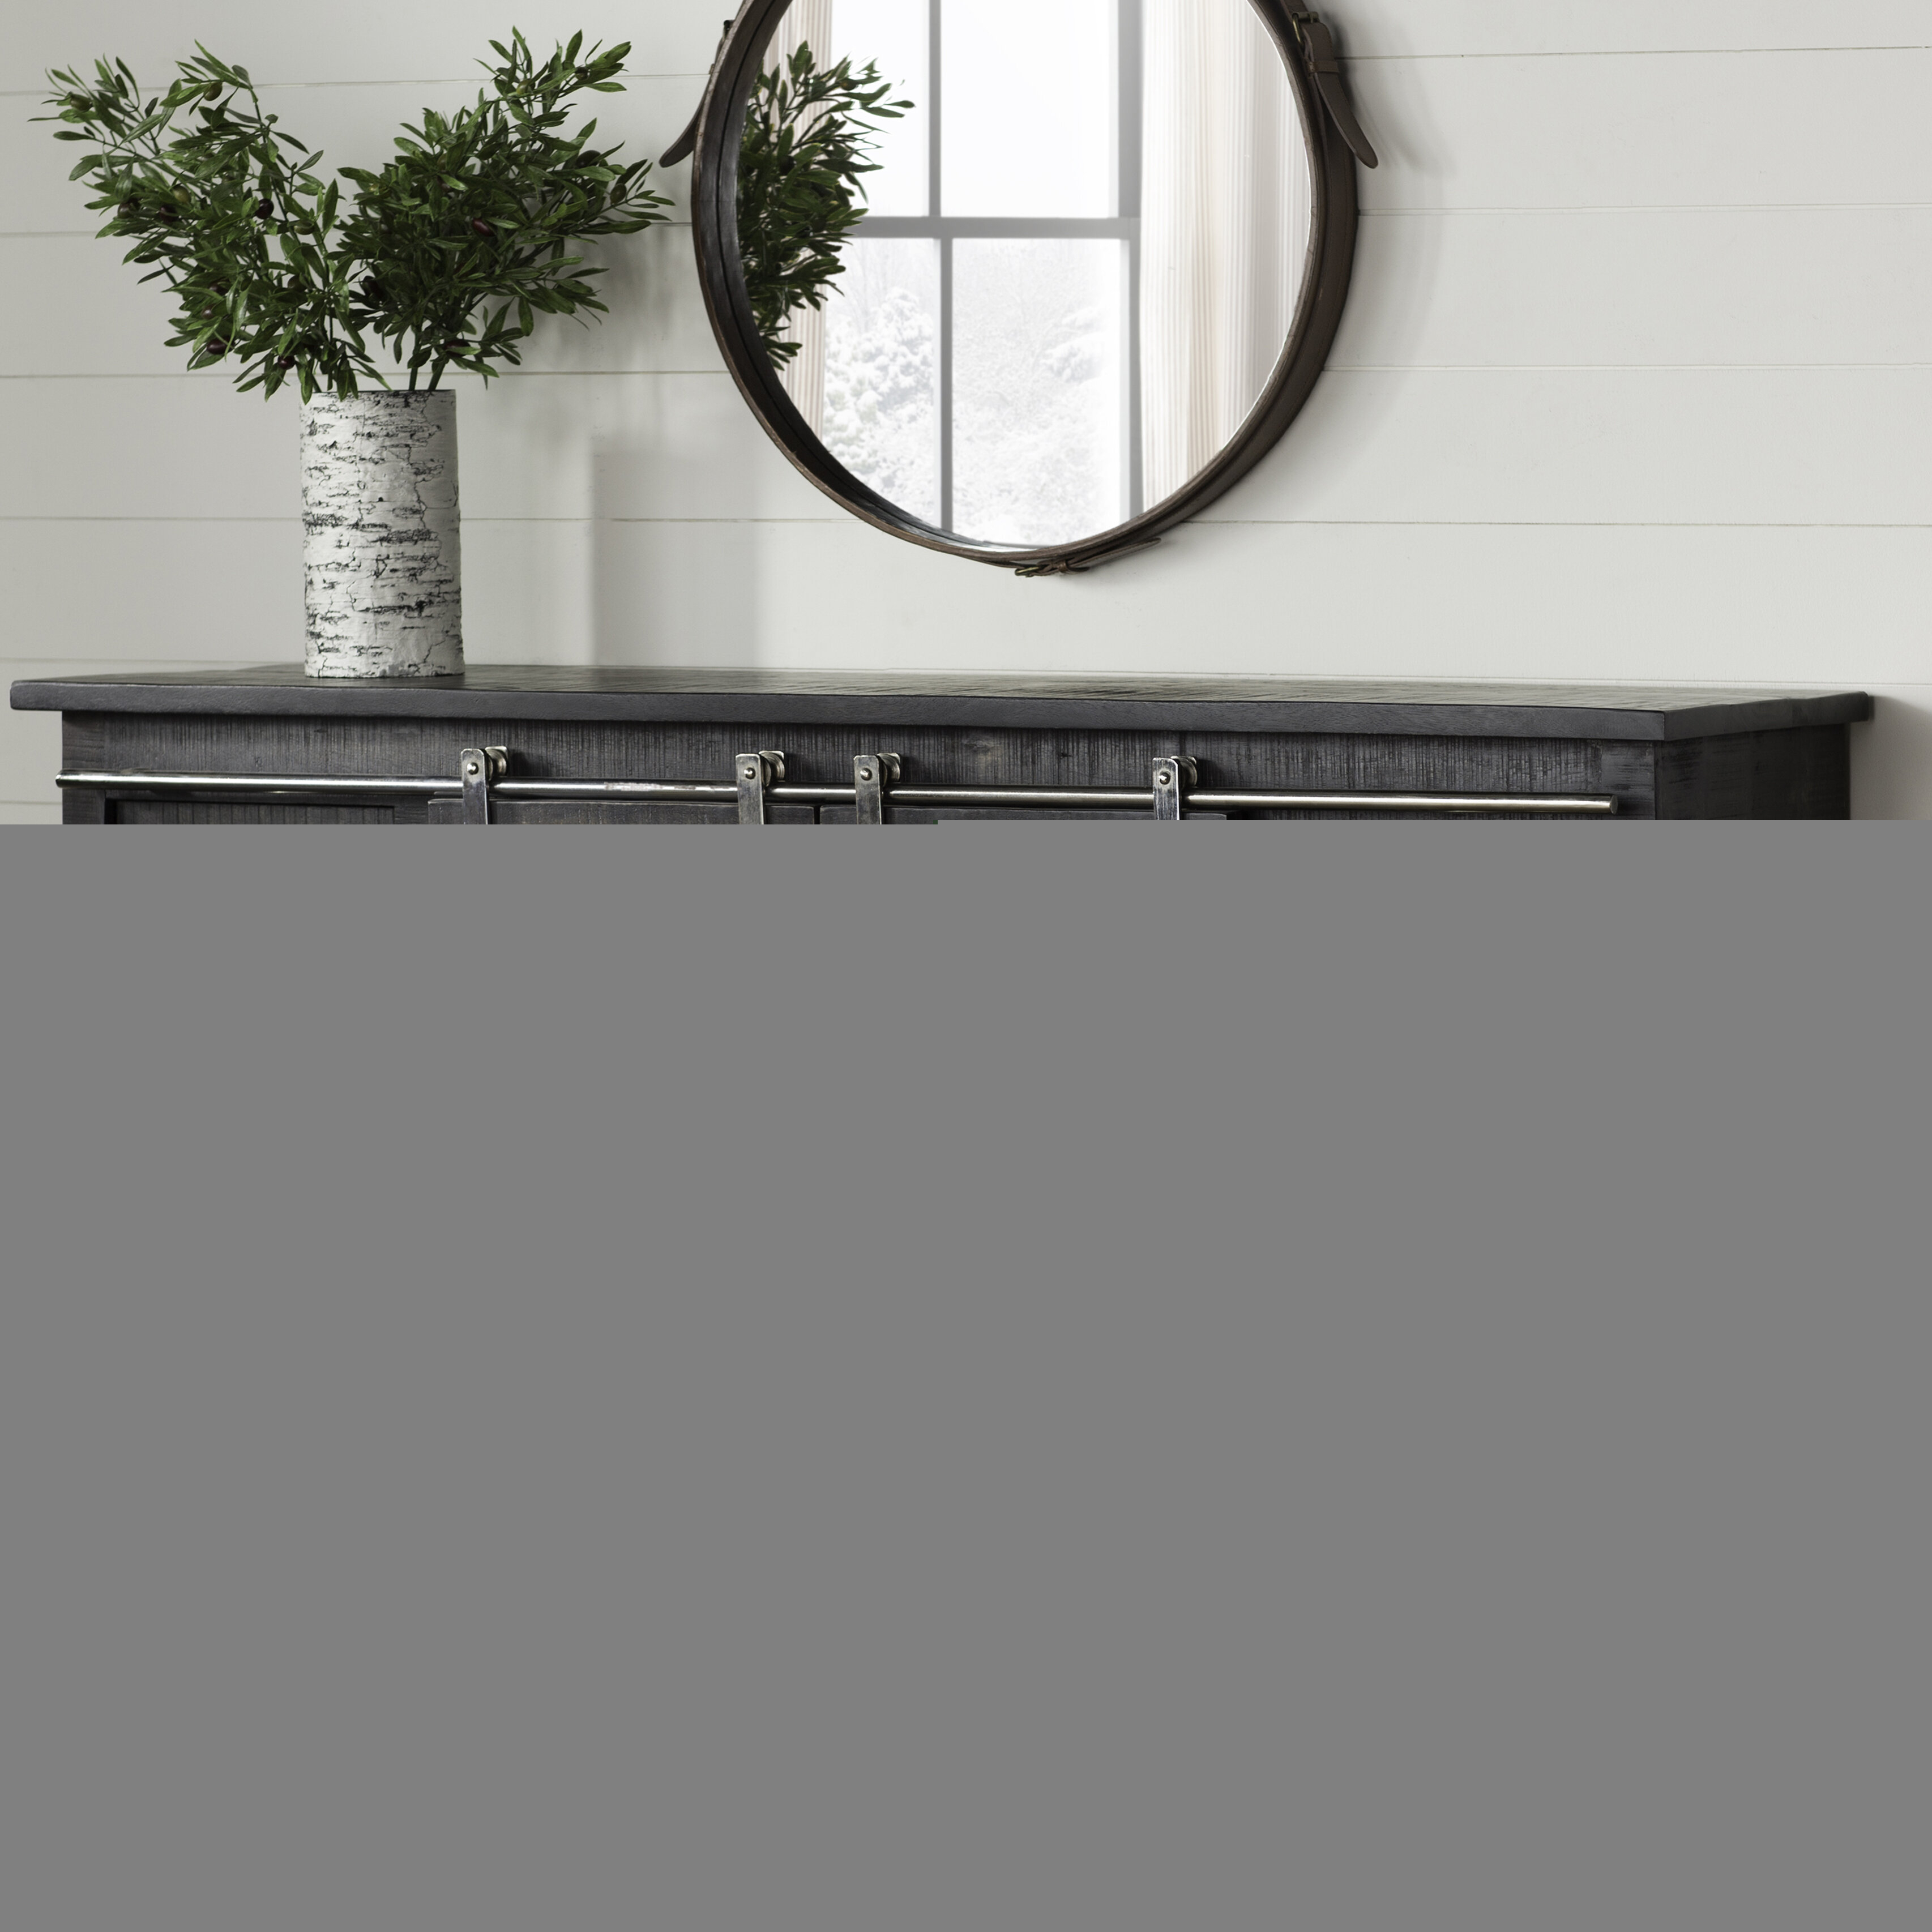 Laurel Foundry Modern Farmhouse Daub Credenza With Regard To Current Candide Wood Credenzas (View 16 of 20)